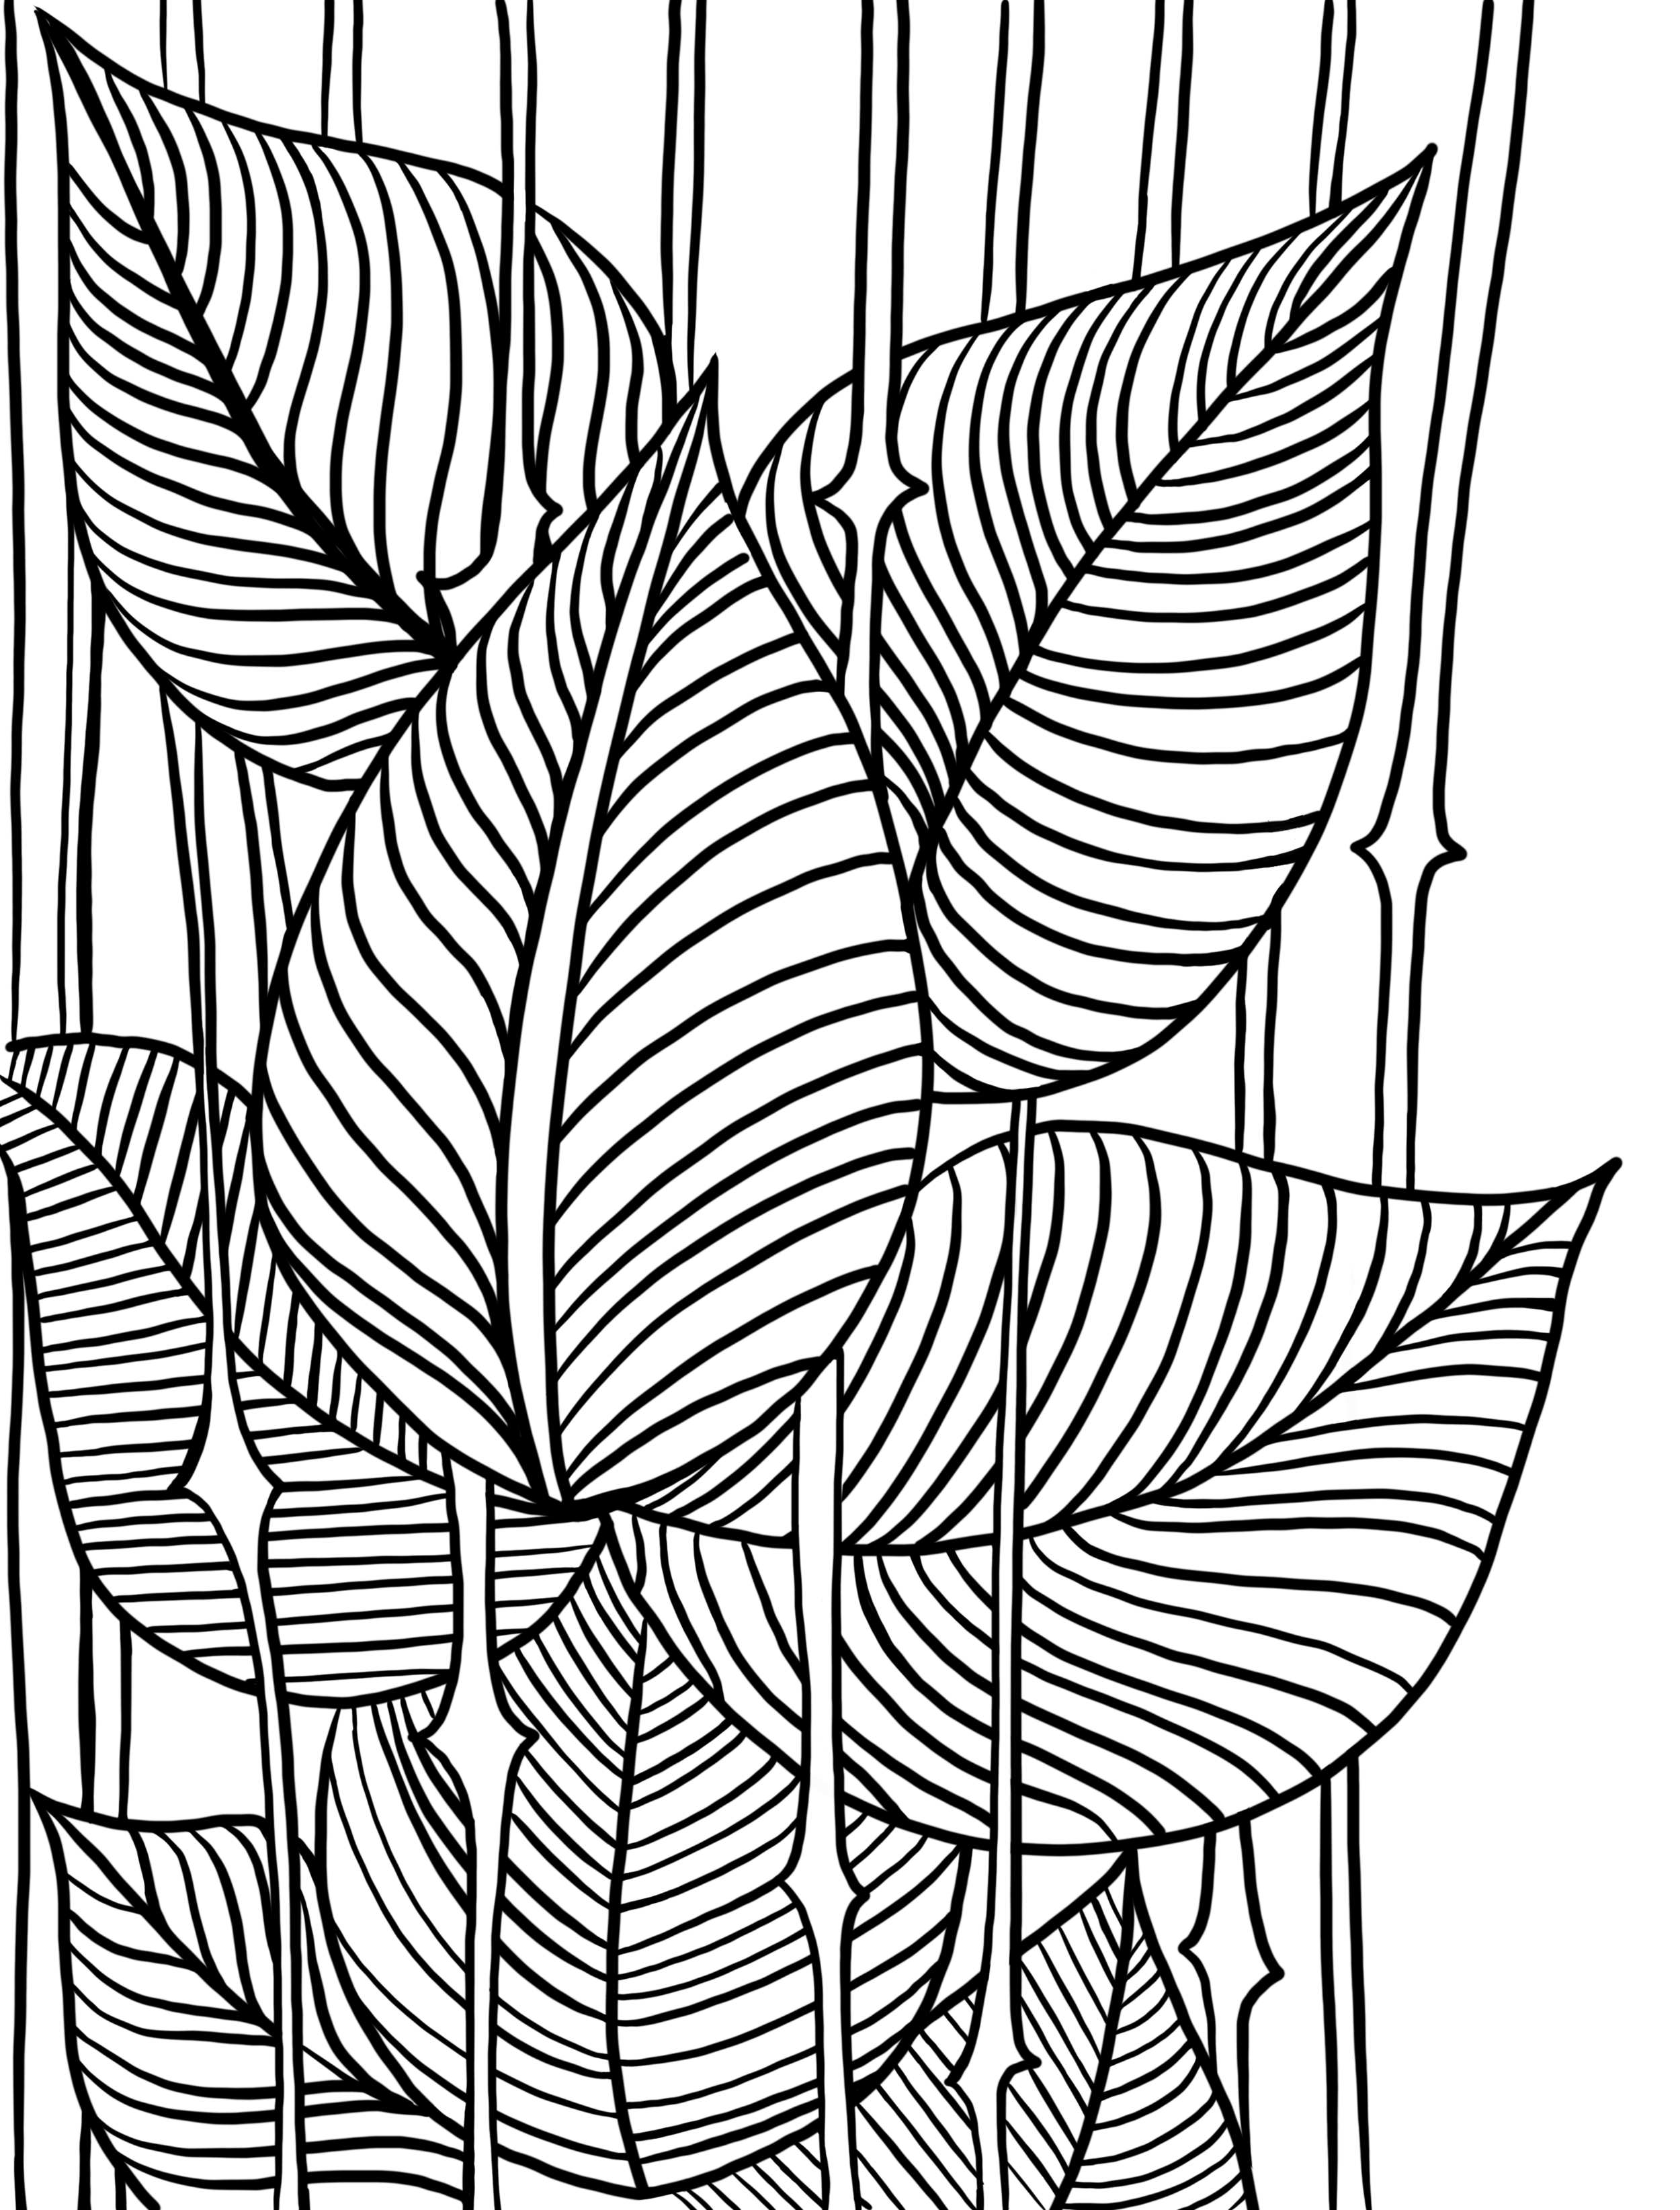 Line_Leaves_2017-11-05.png